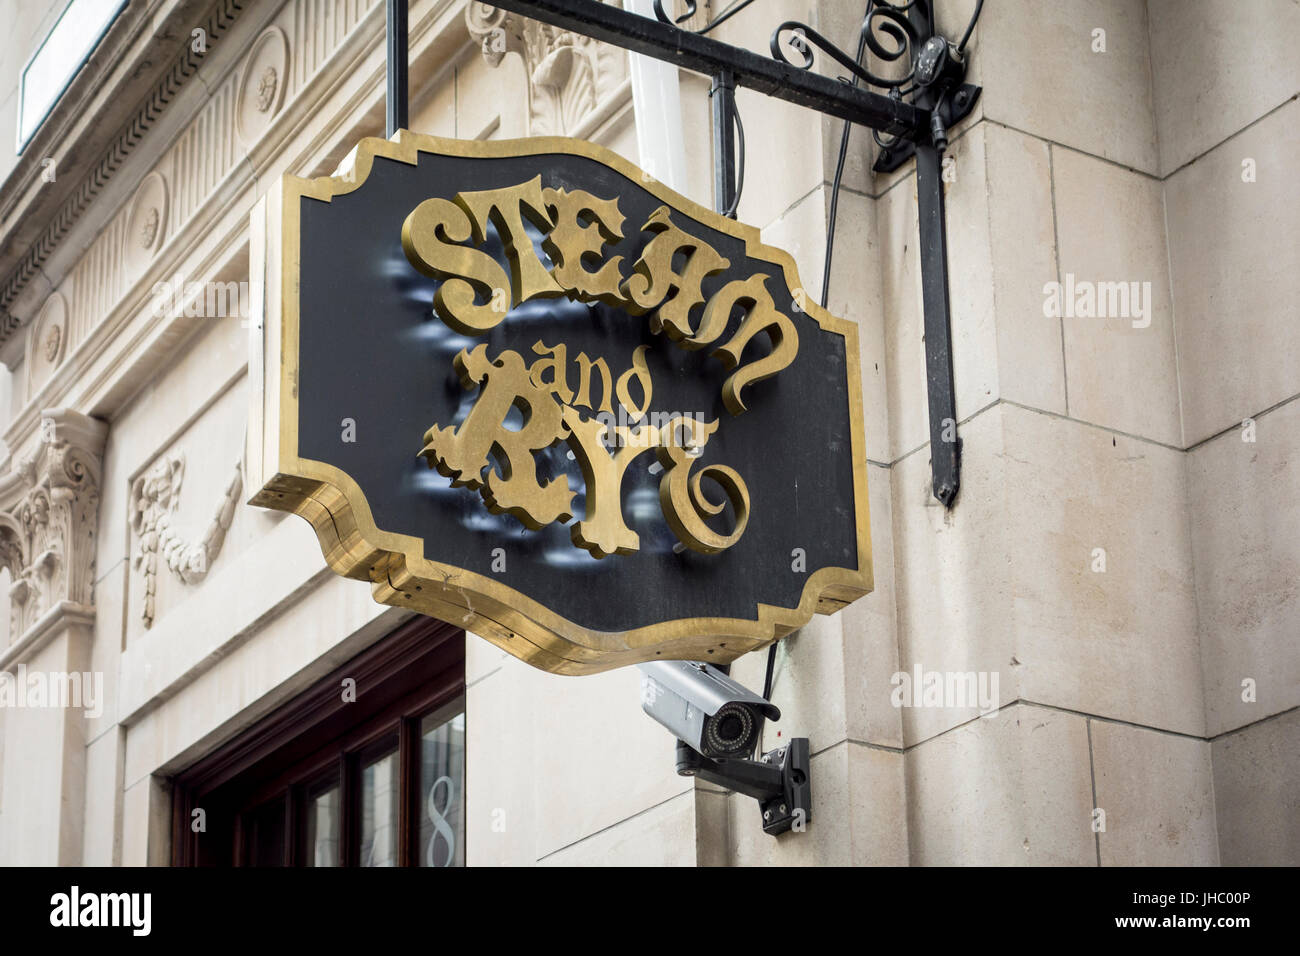 La vapeur et le seigle pub bar signe, Ville de London, UK Photo Stock